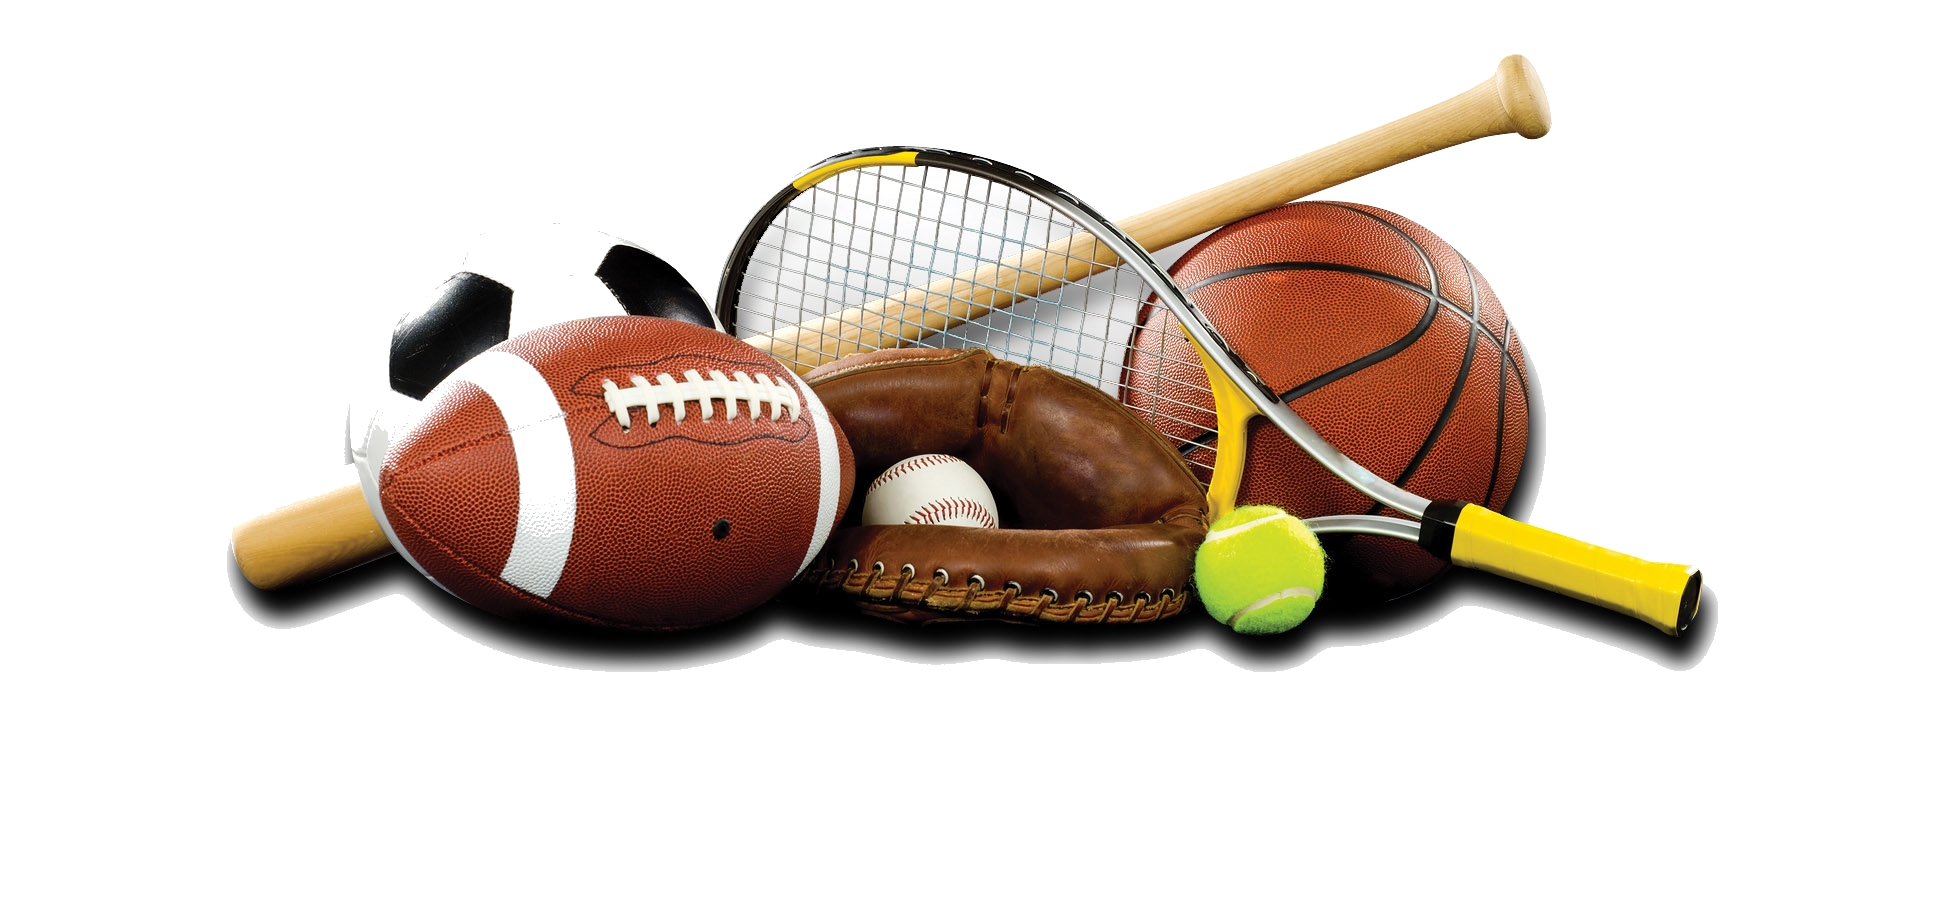 Sports Equipment PNG Images Transparent Free Download.